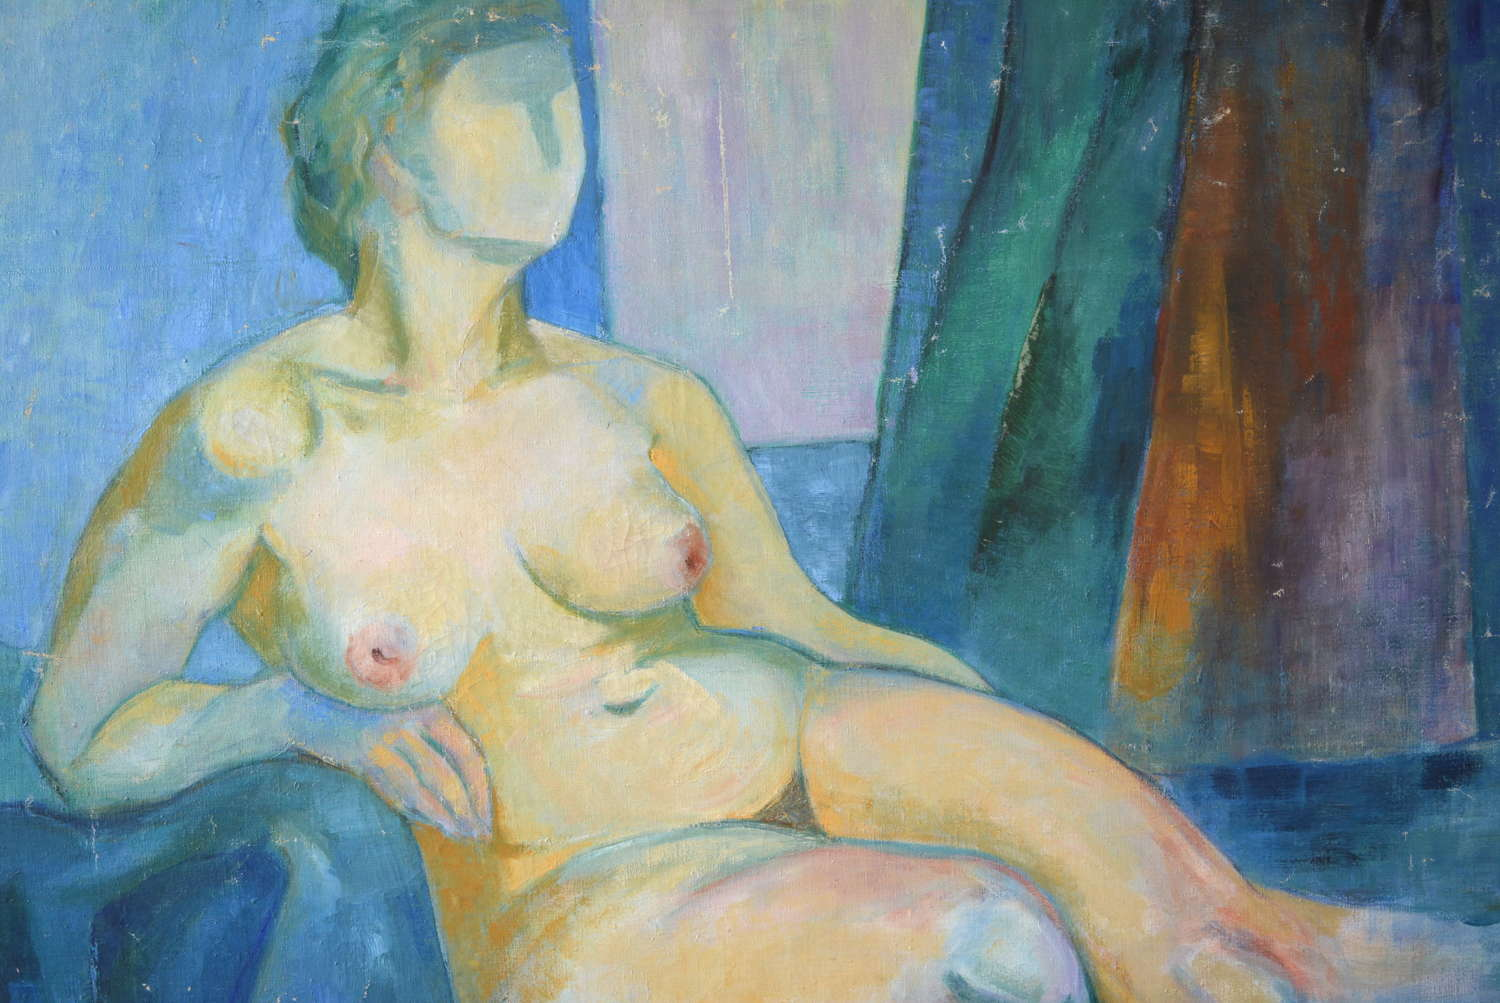 MID CENTURY STUDY OF A NUDE BY HILMO VIRMA